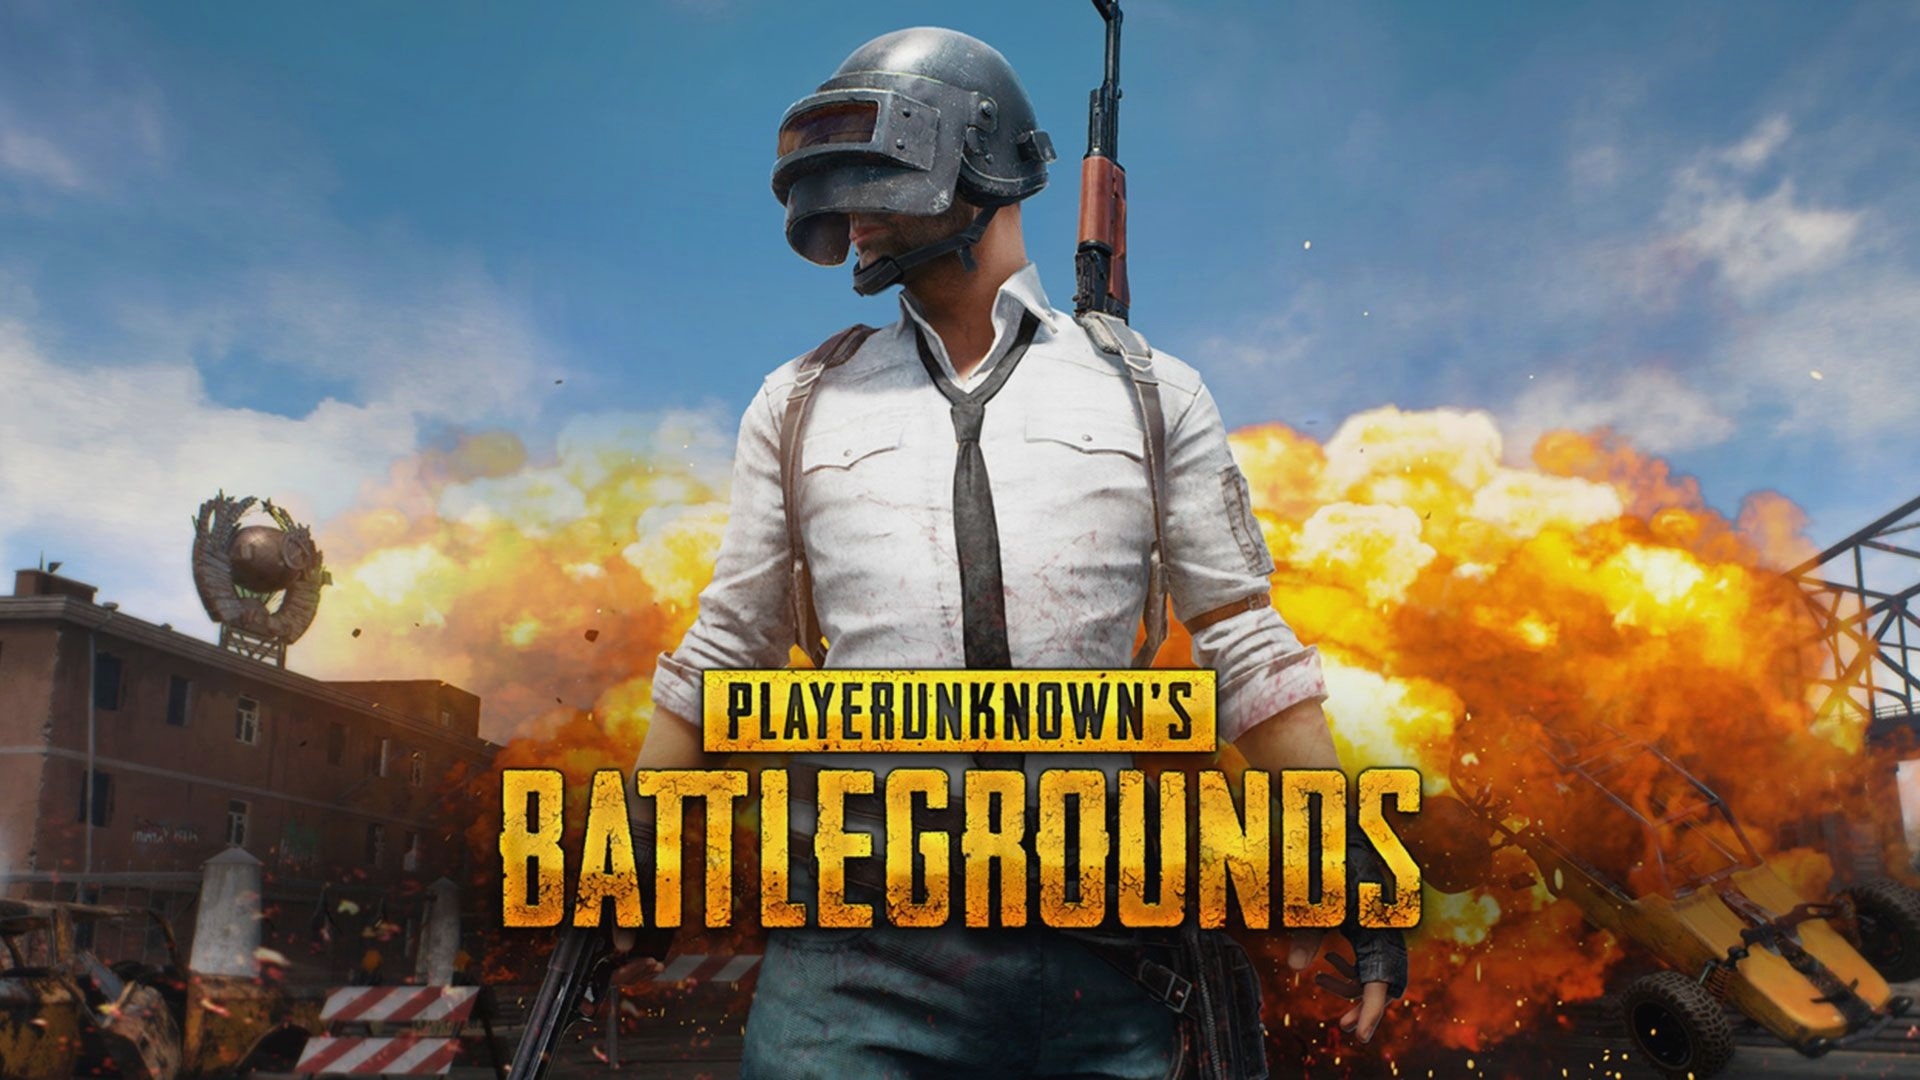 Get Pubg Wallpapers Full Hd Wallpaper 1080p Hd To Your